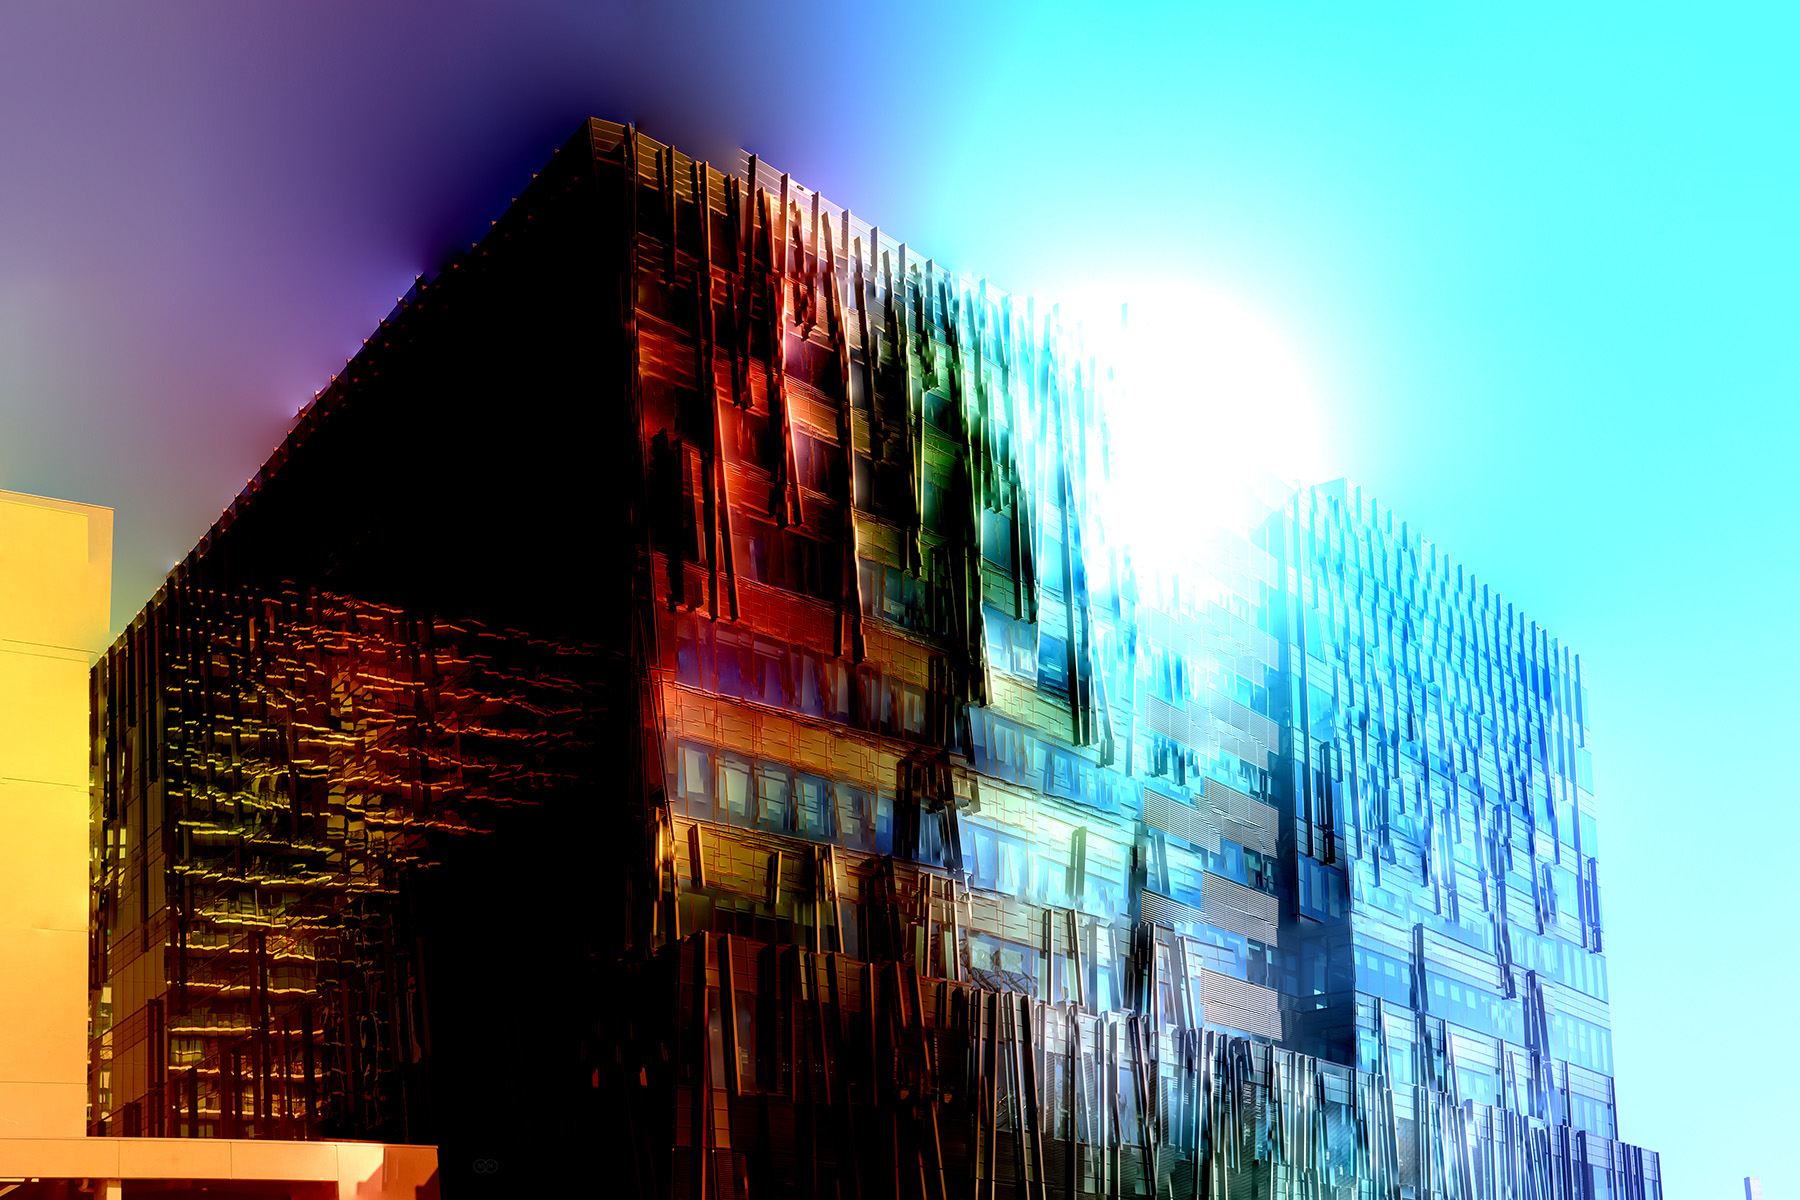 Spectral Wall - Urb06